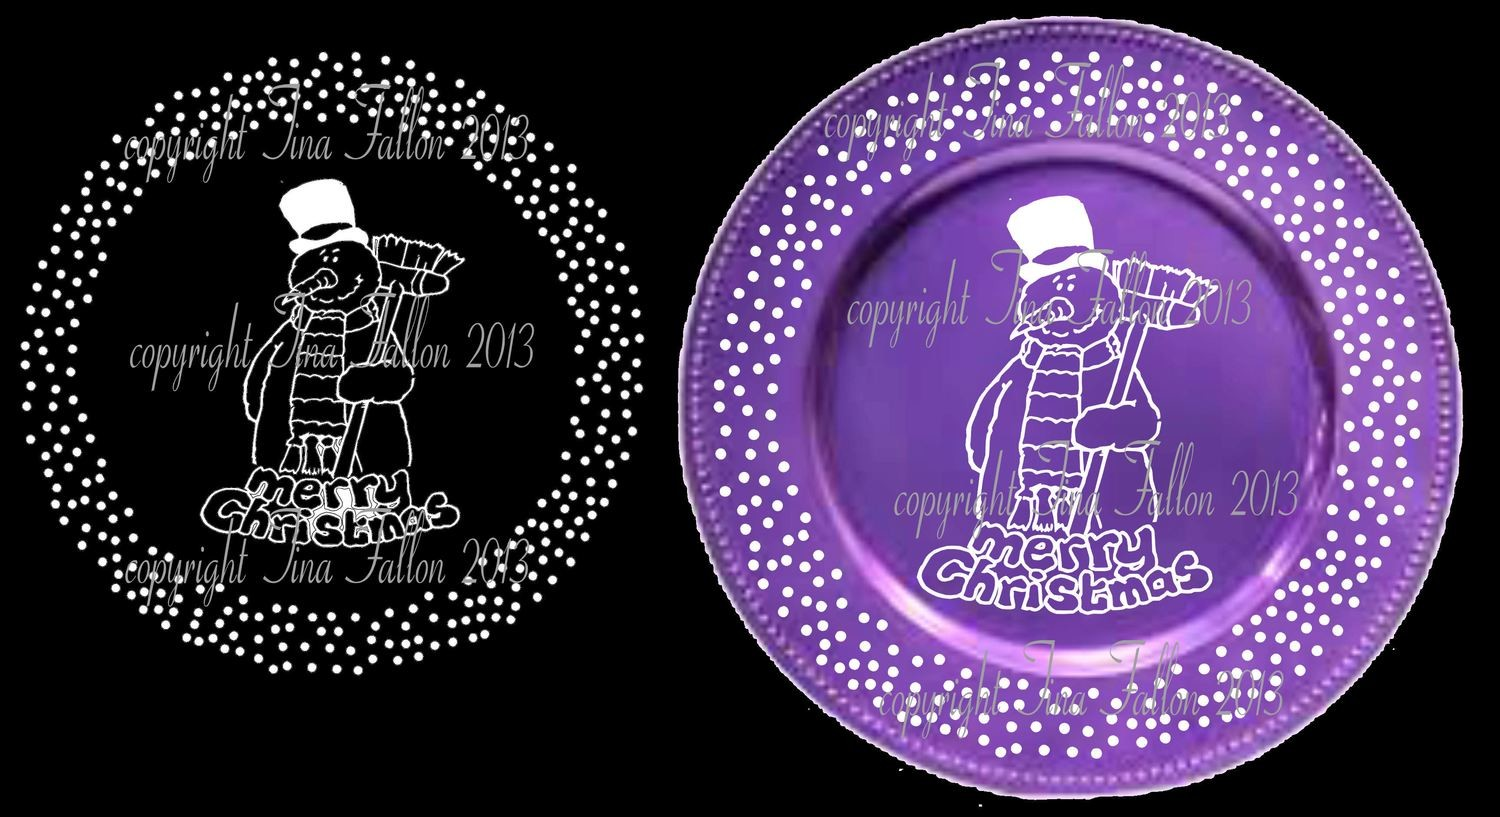 Snowman Vinyl design for Christmas charger plates